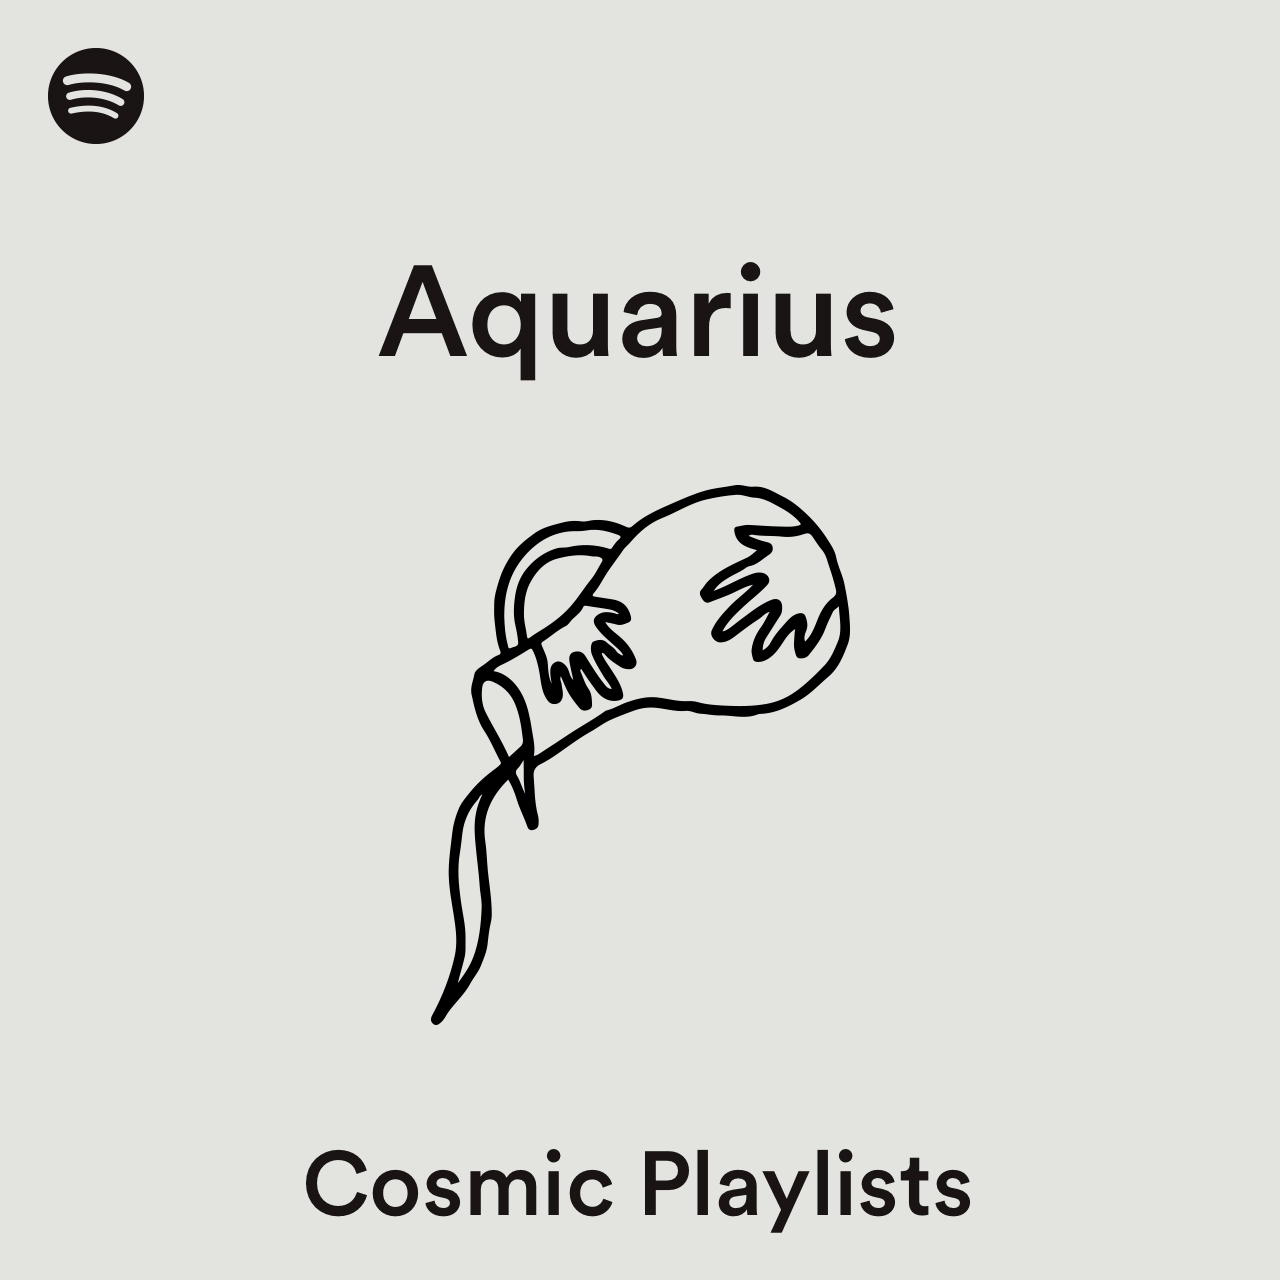 190110-Astrology-PlaylistCovers-03_0010_Aquarius